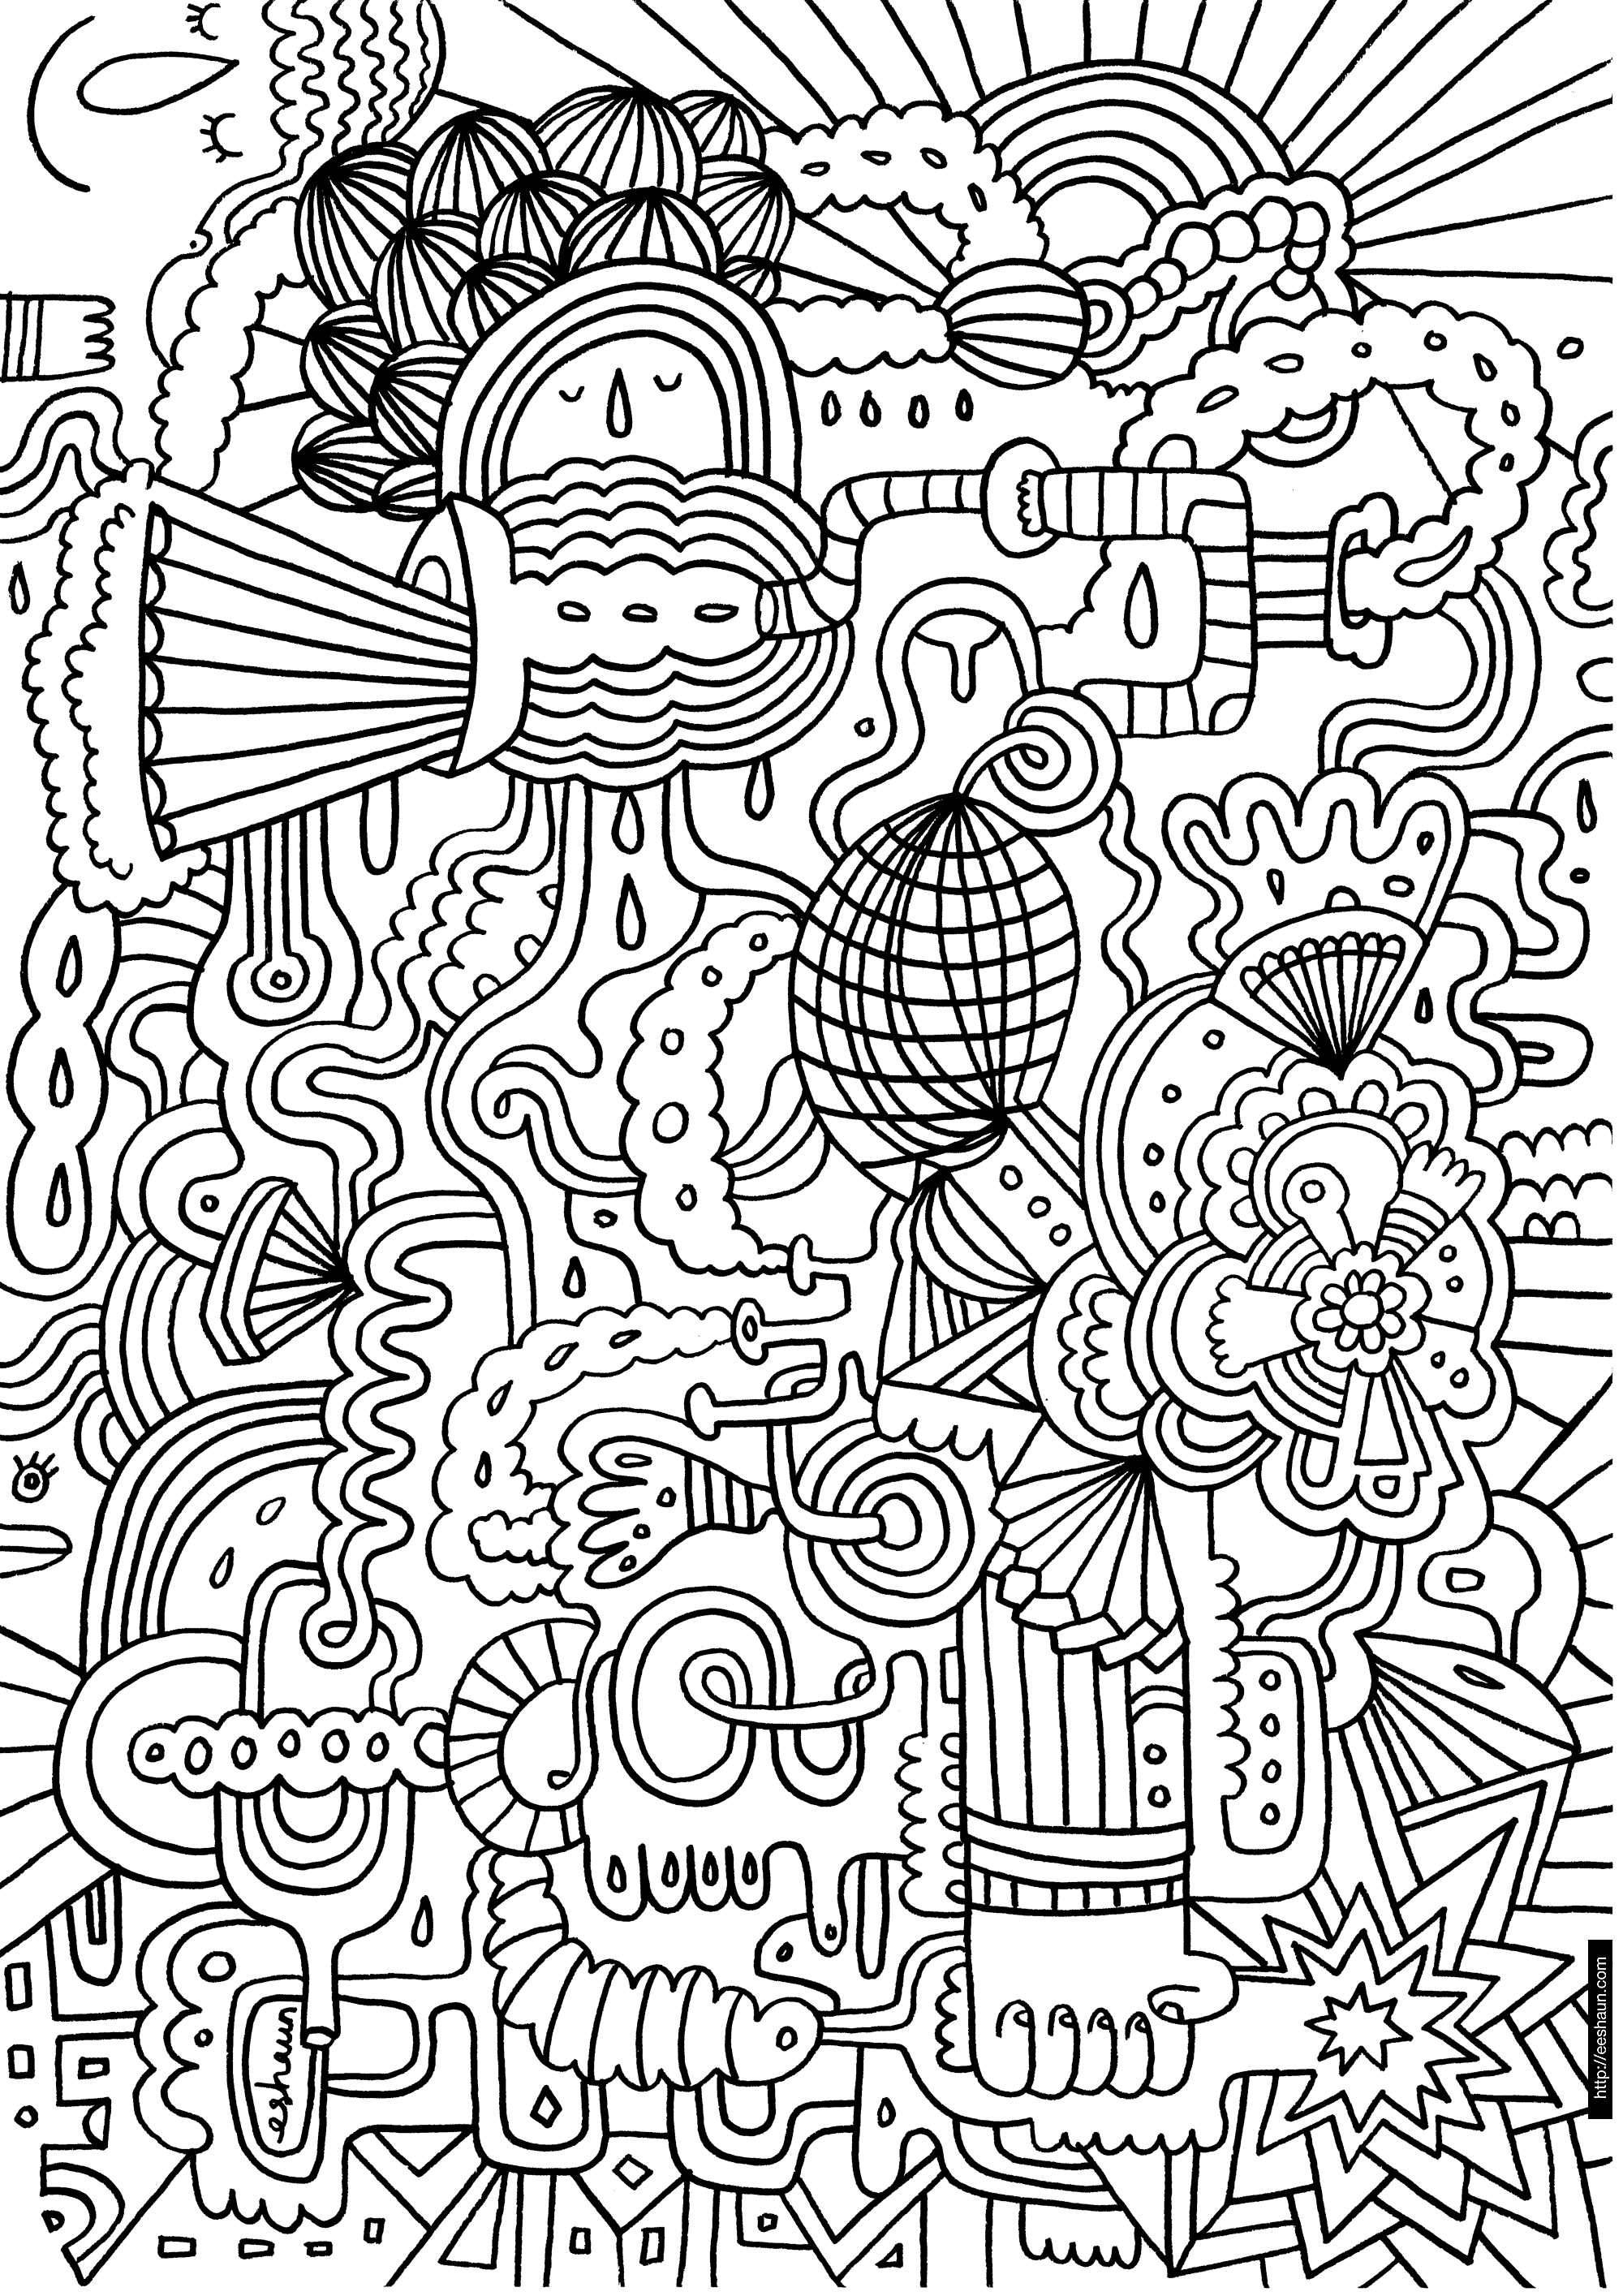 Coloring Pages Mehndi Designs Download – Free Coloring Sheets